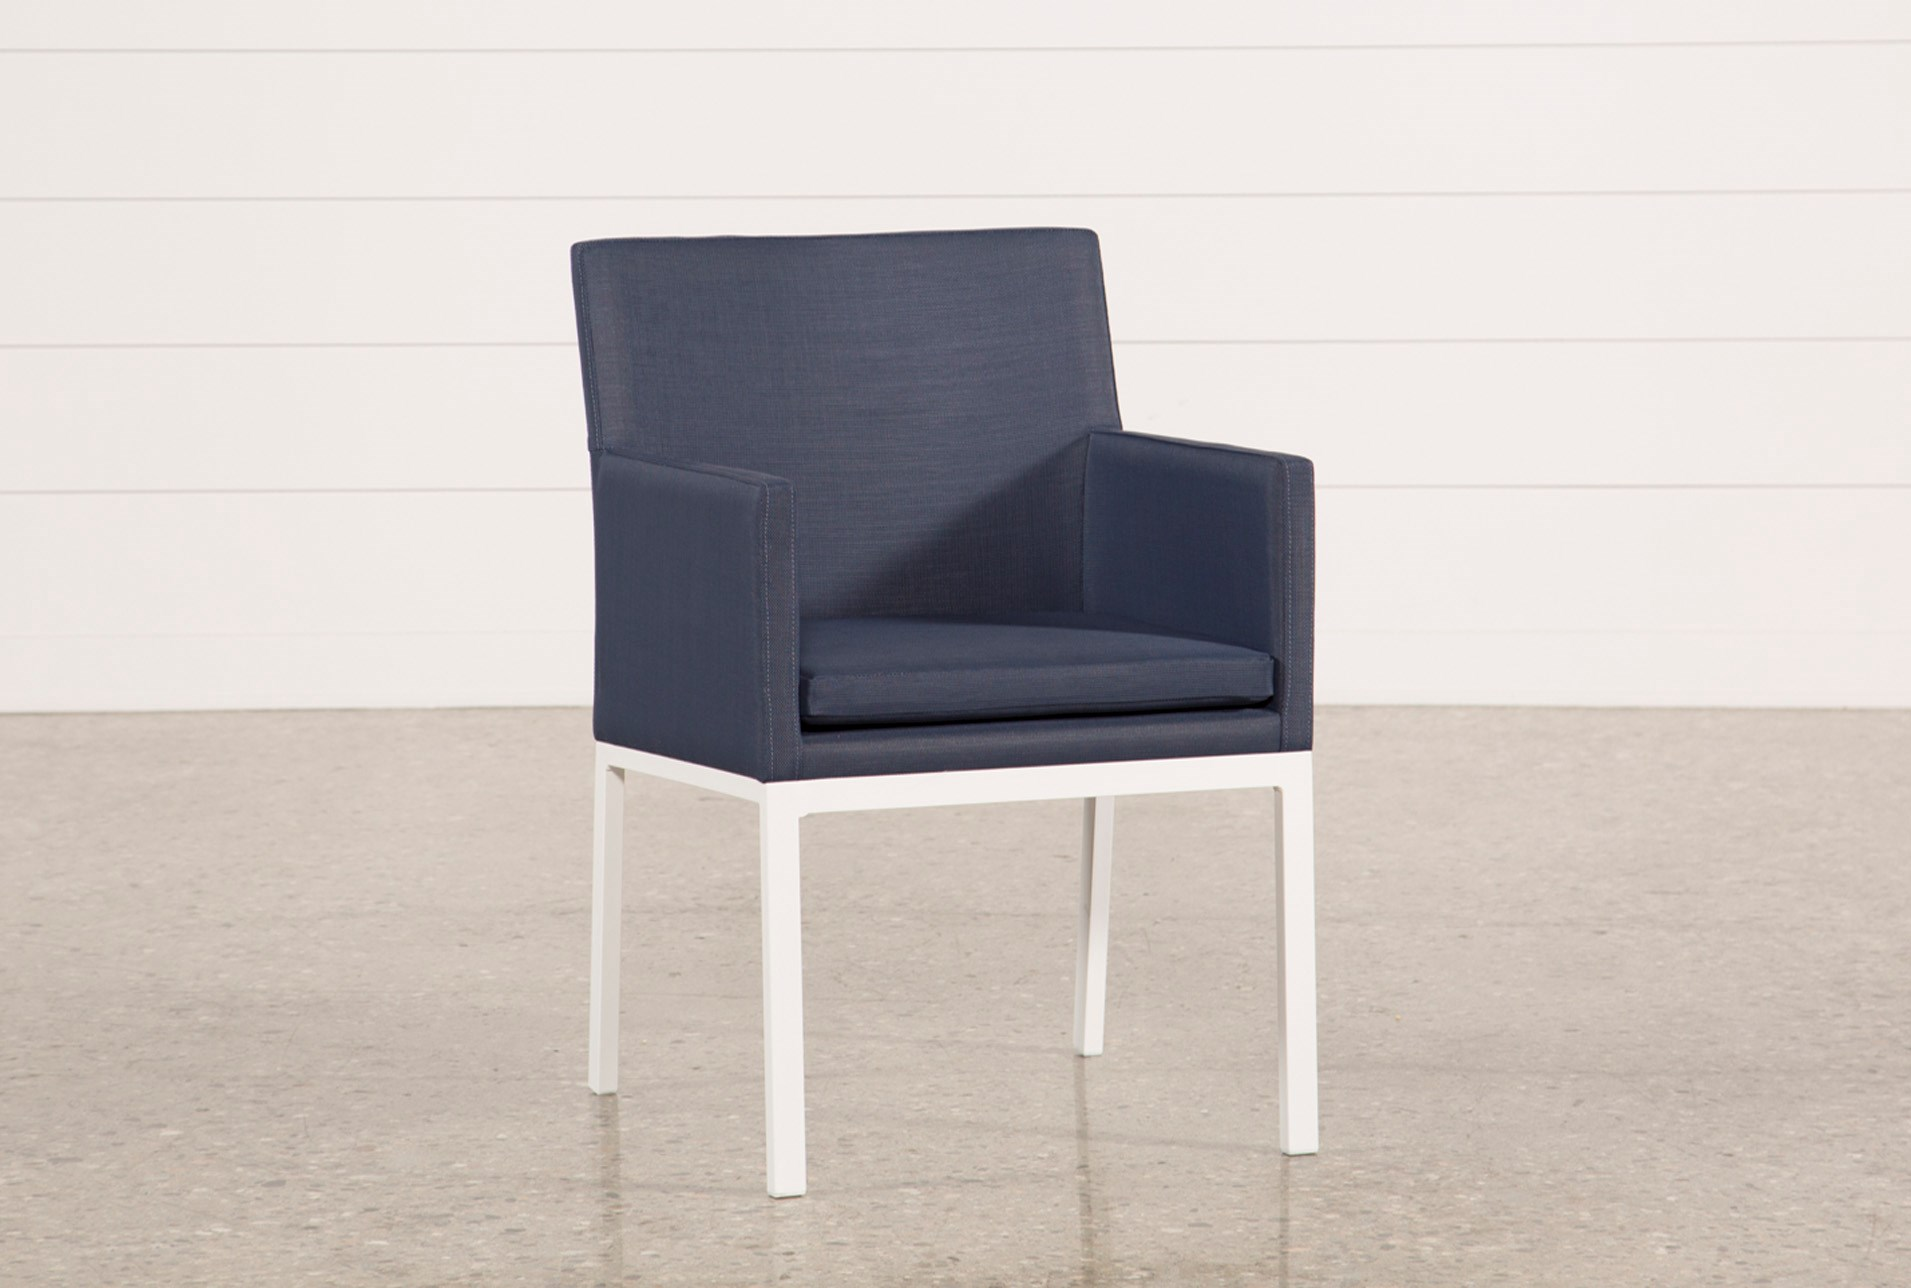 Outdoor Biscayne Ii Navy Upholstered Dining Chair Qty 1 Has Been Successfully Added To Your Cart